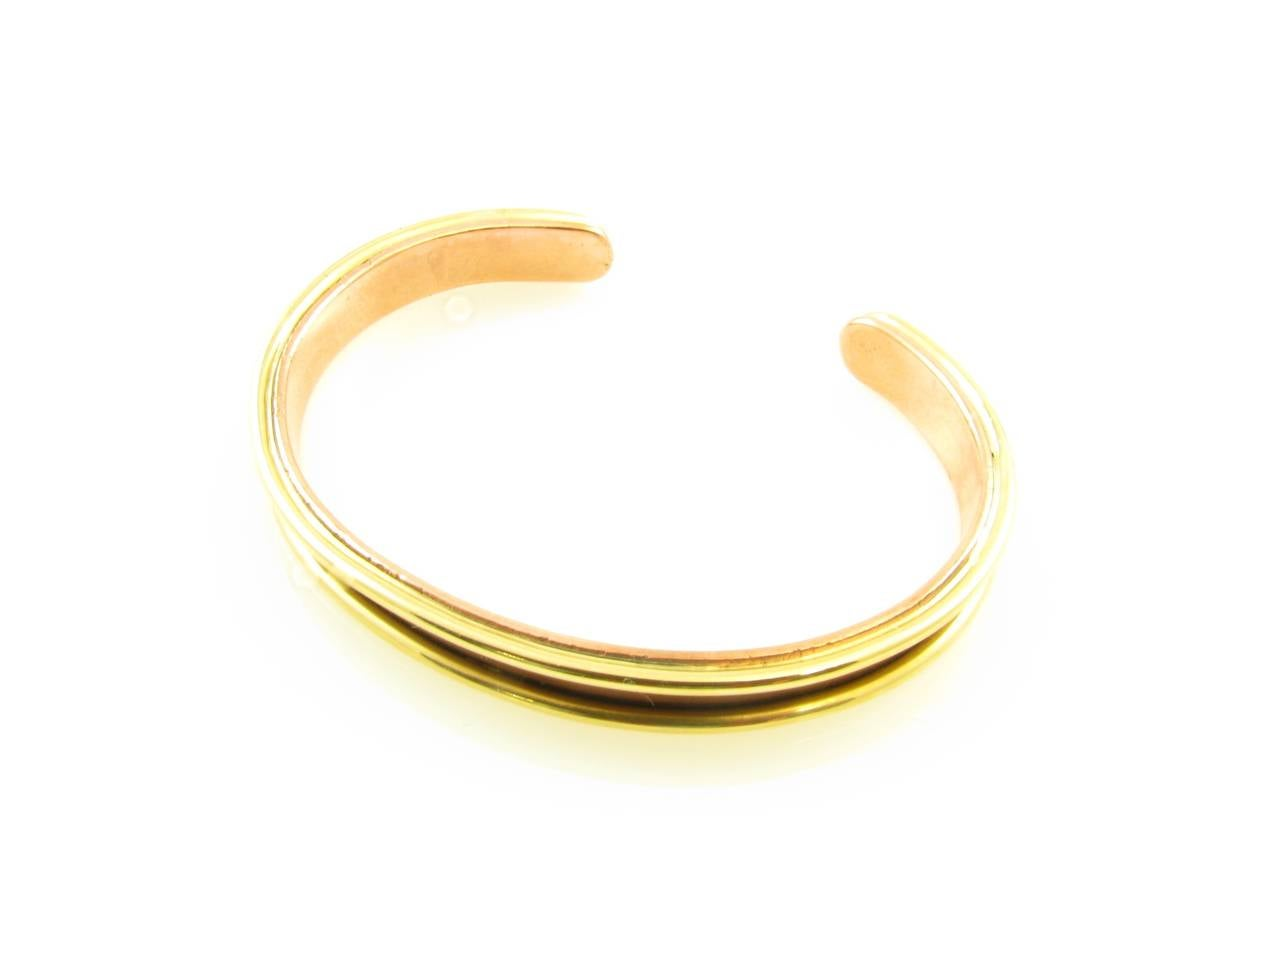 bangle bracelets premium bangles for custom psd ideas gold design trends jewelry men designs bracelet wide fashion